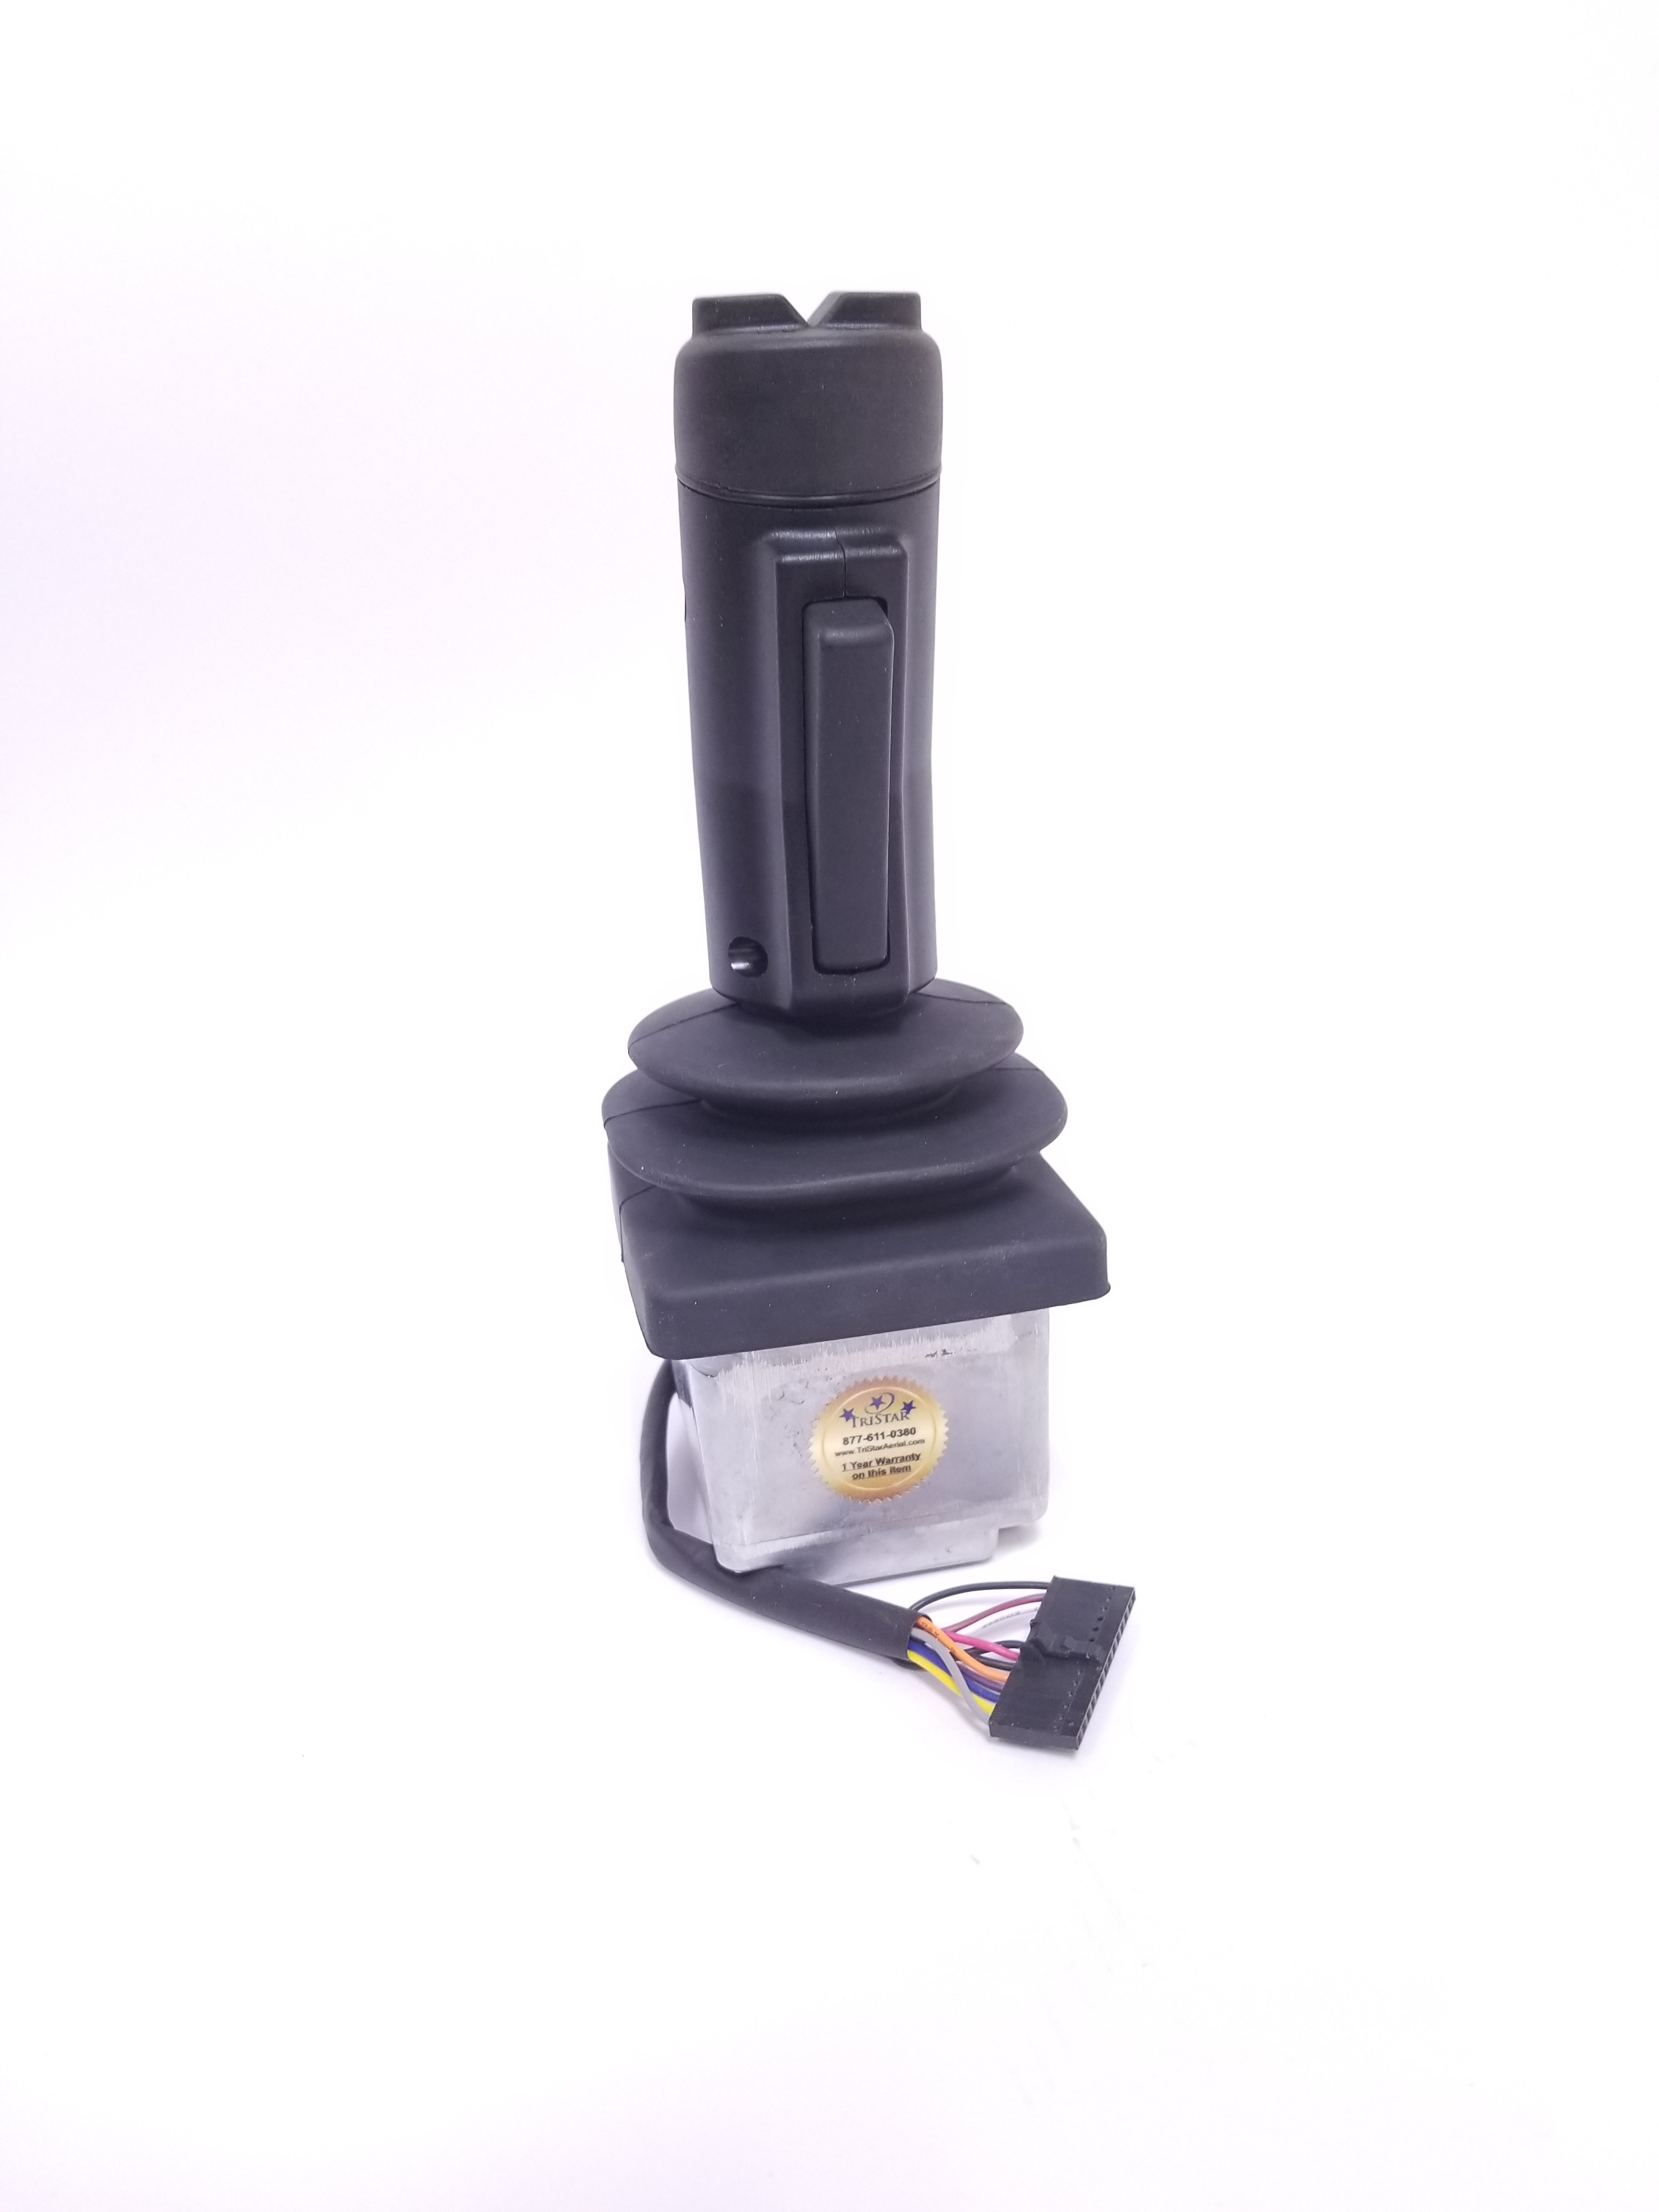 Genie 78903 Replacement Joystick for Control Box 100840